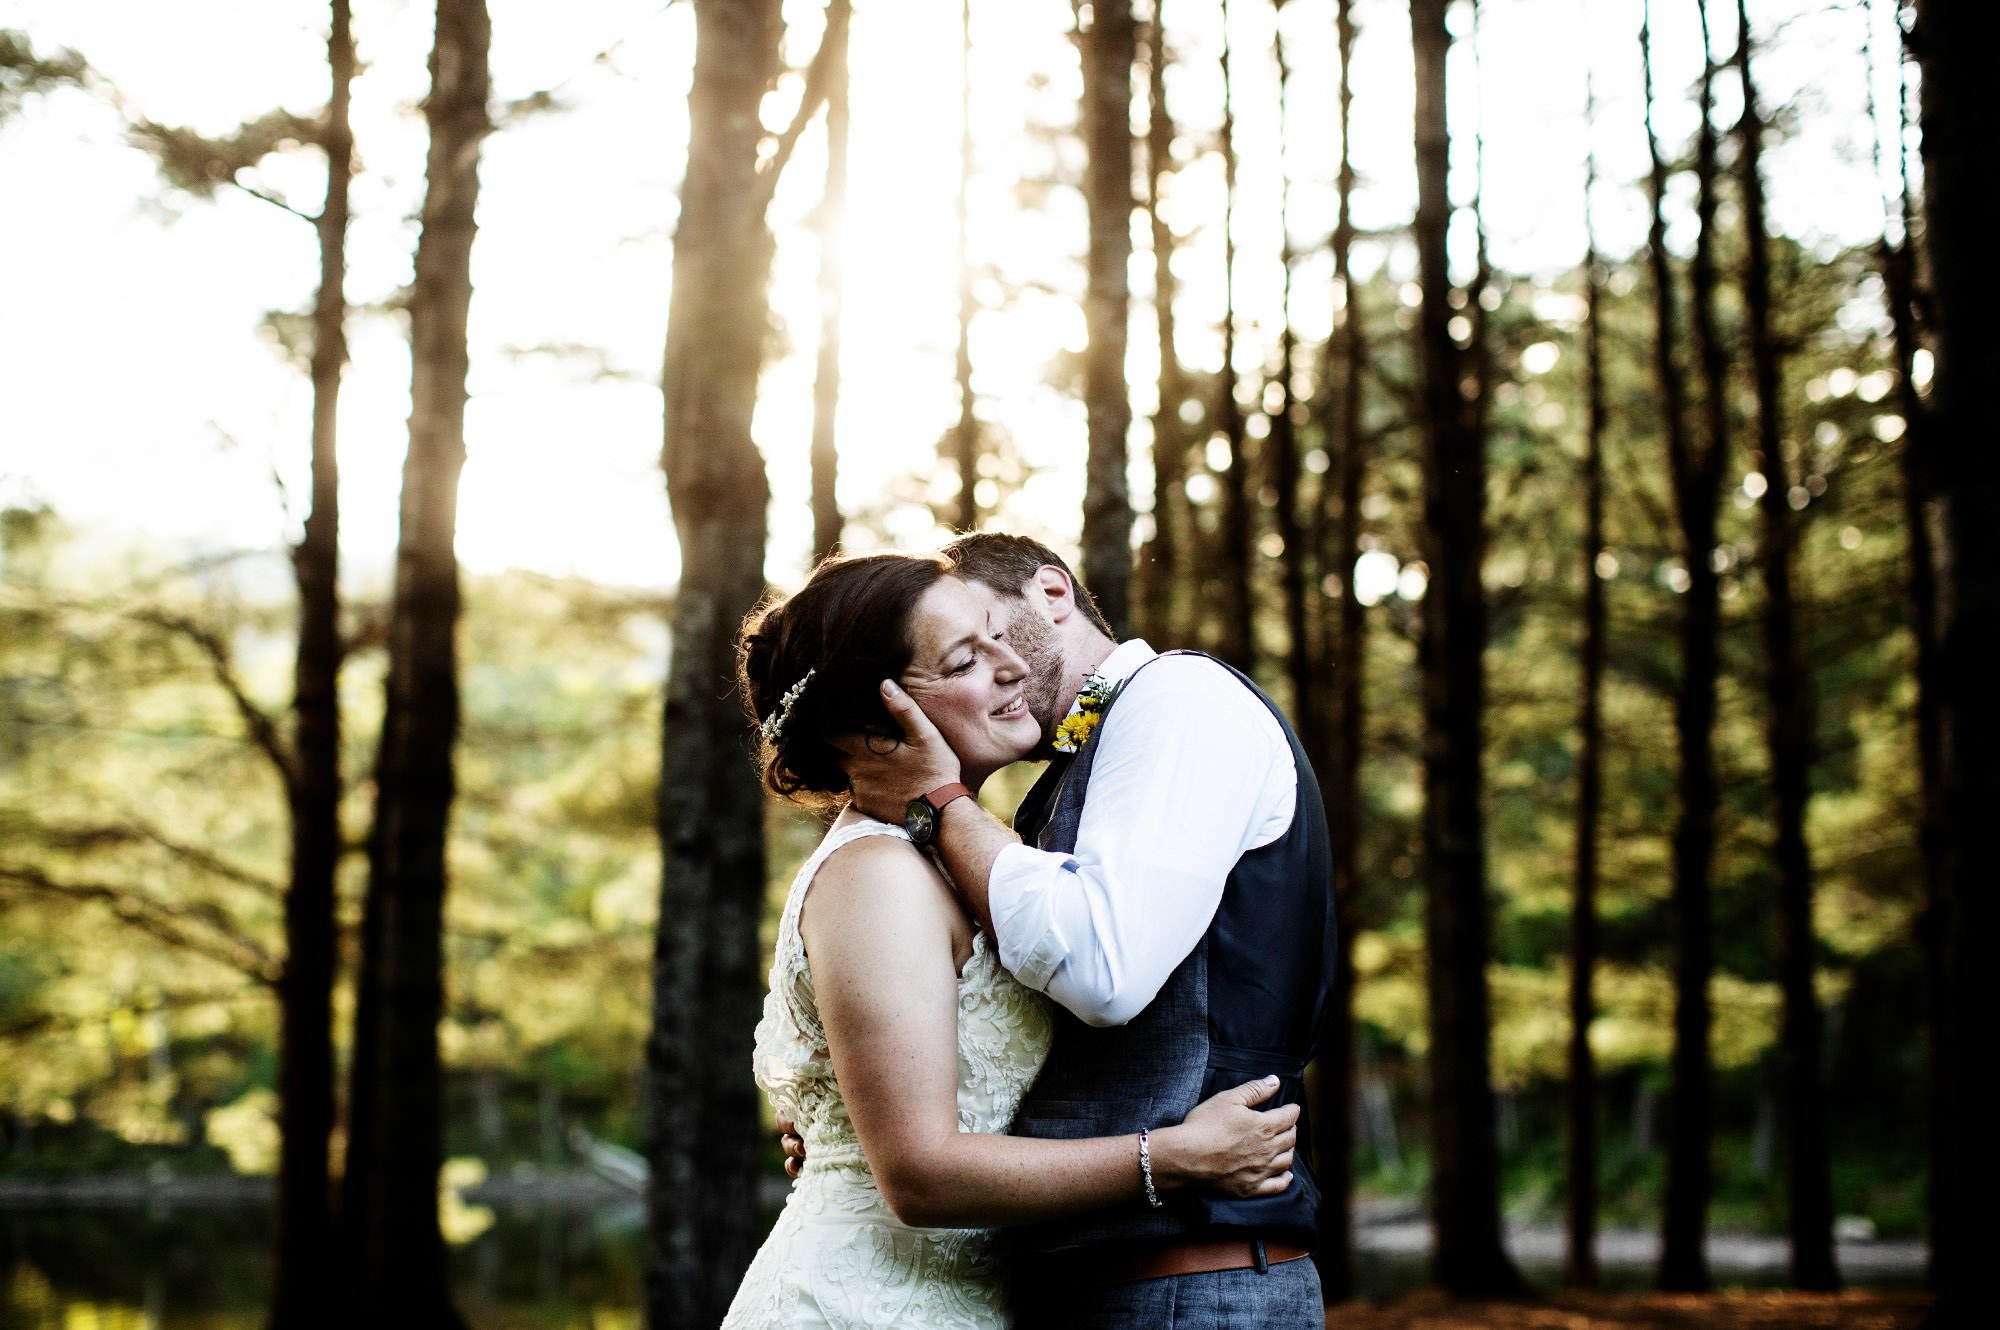 Maine Lakeside Cabin wedding  I  The bride and groom kiss during sunset on Wyman Lake.